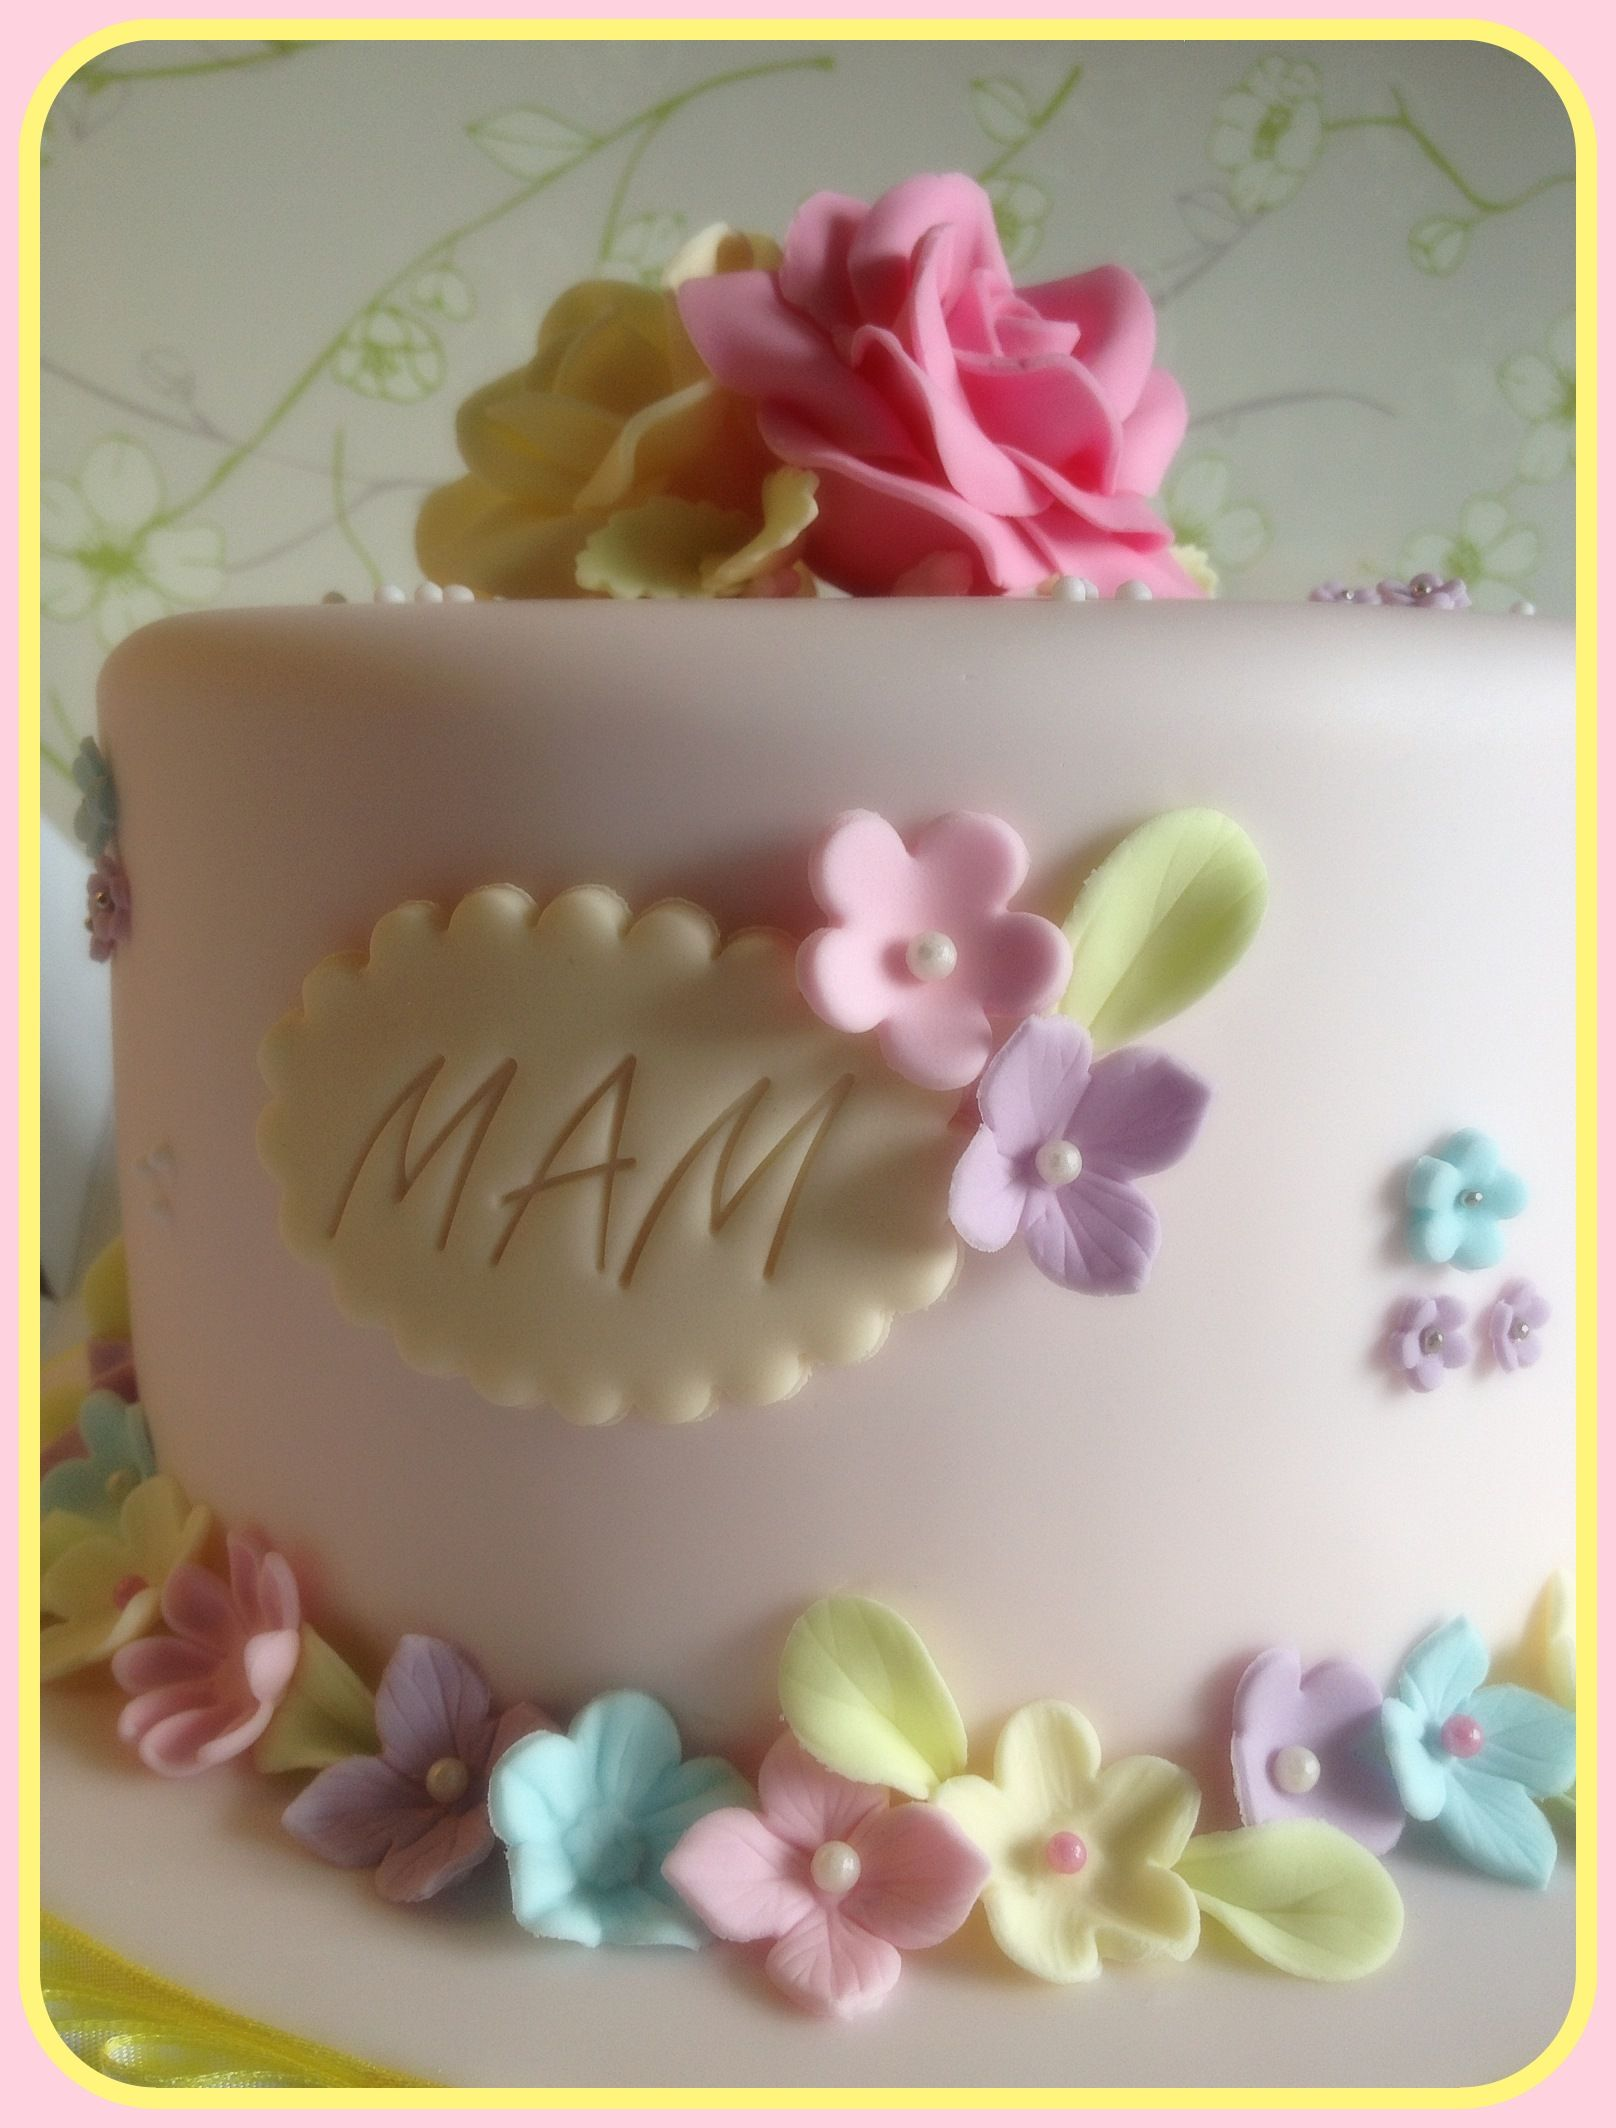 Fondant Cake Designs For 60th Birthday : 60th Birthday Cake ? Cakes, Cakes & More Cakes ...